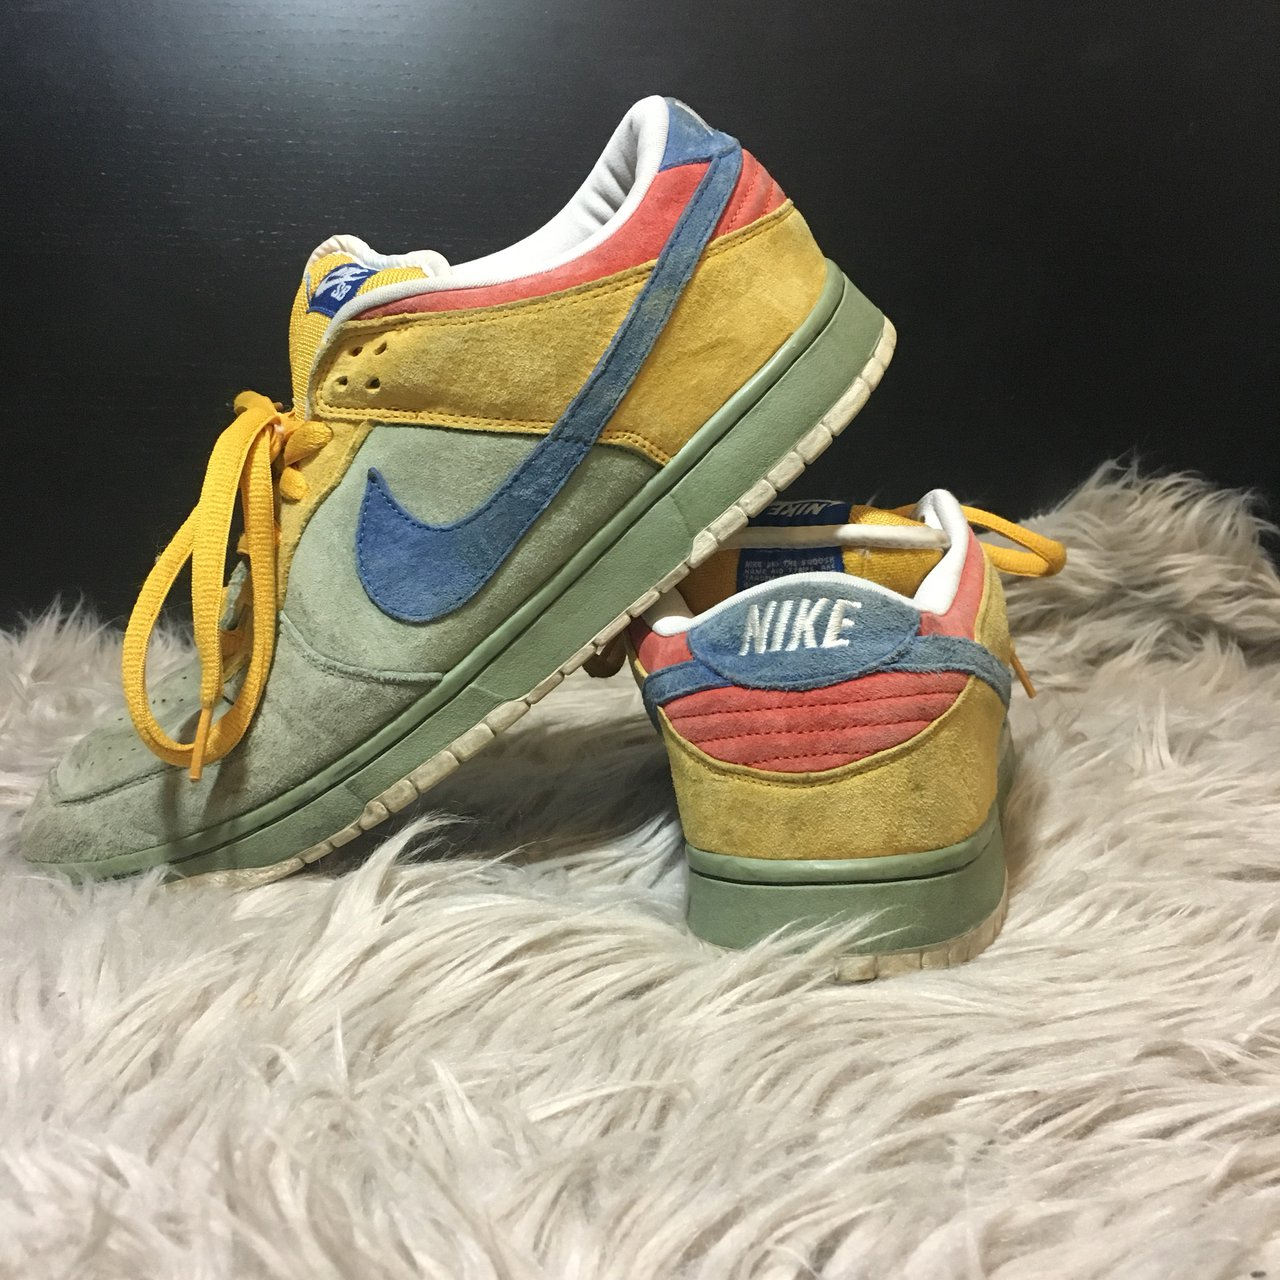 newest 9e34b 489b6 NIKE DUNK SB LOW PREMIUM SB PUFF N STUFF Visible signs of a